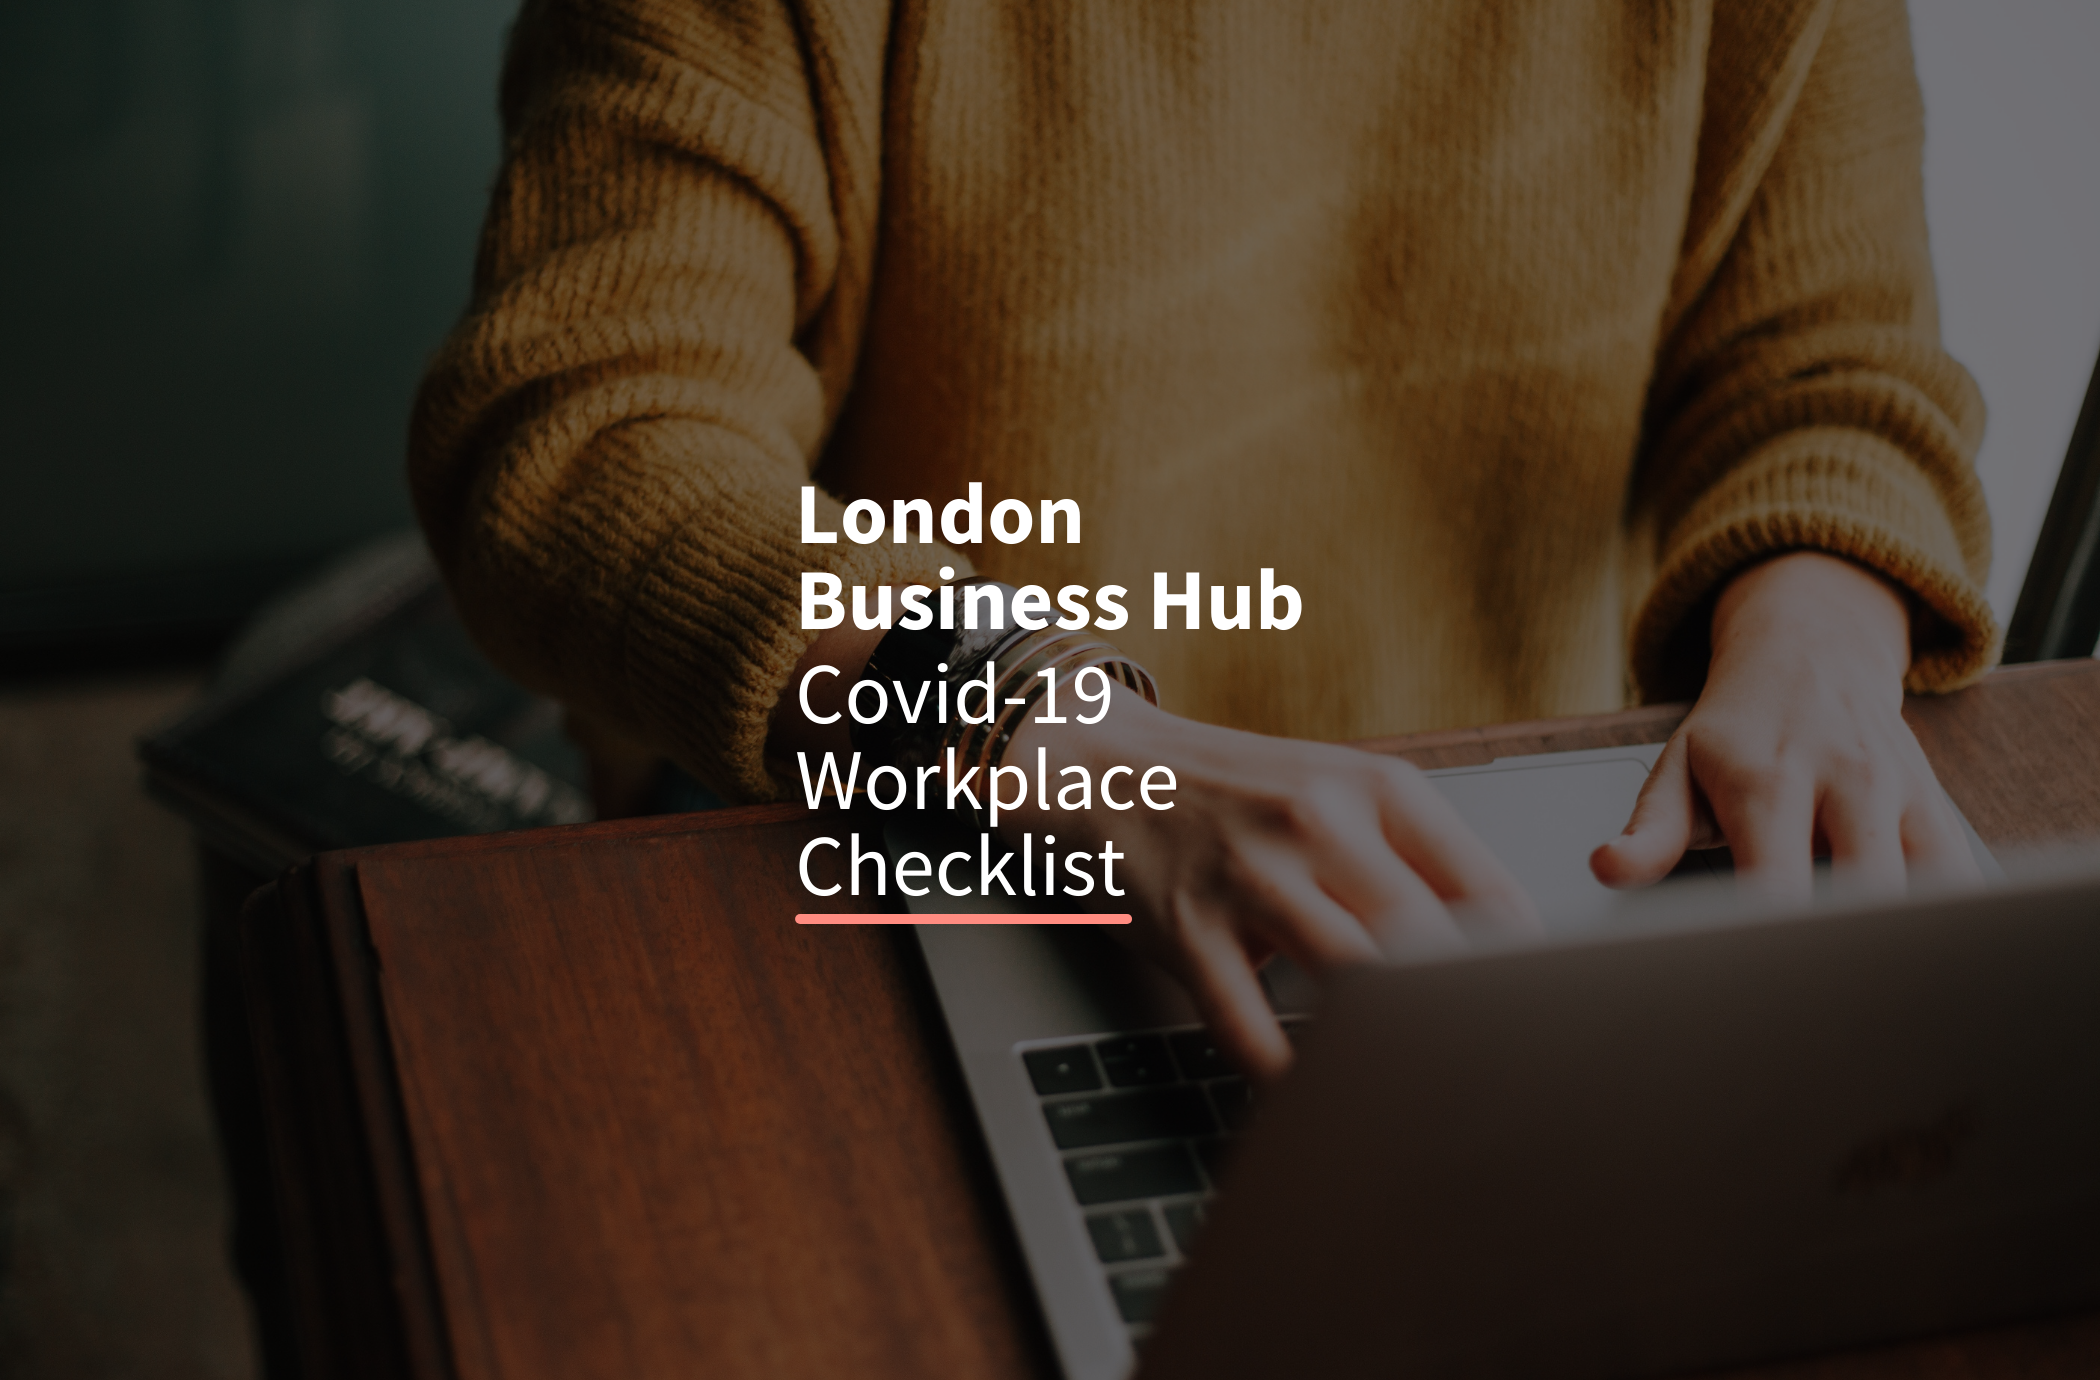 COVID-19 Workplace Checklist